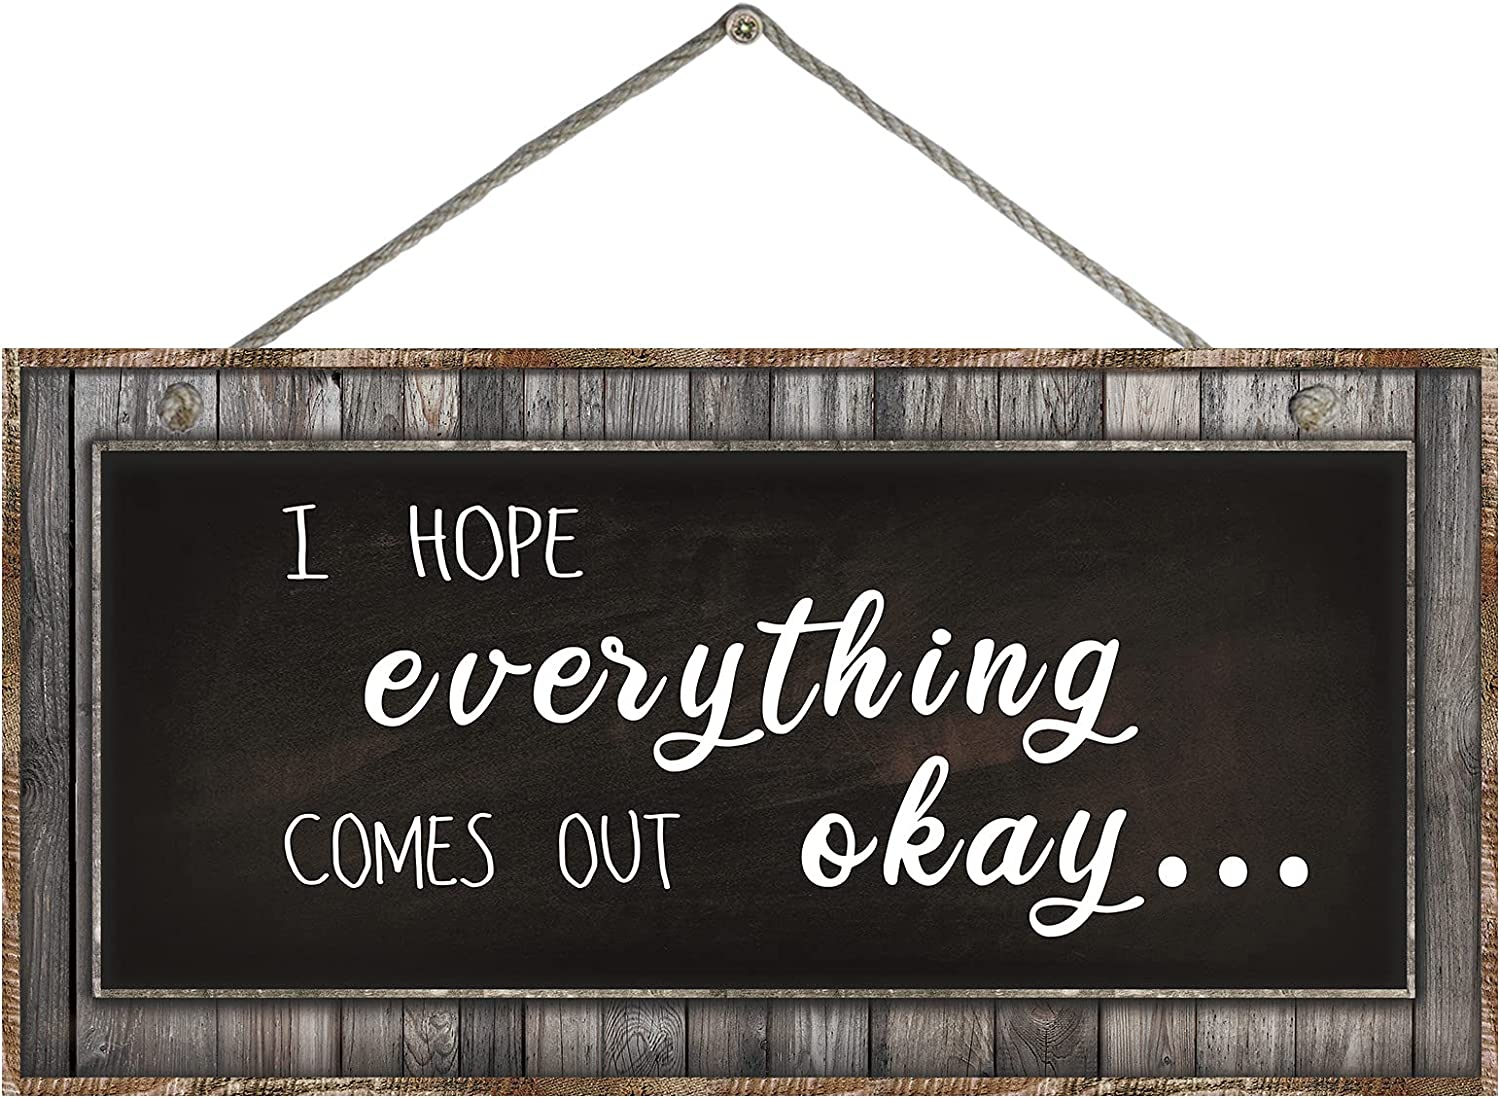 I Hope Everything Comes Out Okay Sign- Funny Farmhouse Wall Decor Sign, Cute Guest Bathroom Wall Art, Rustic Home Decor, Modern Farmhouse Sign for Bathroom Wall with Funny Quotes 12